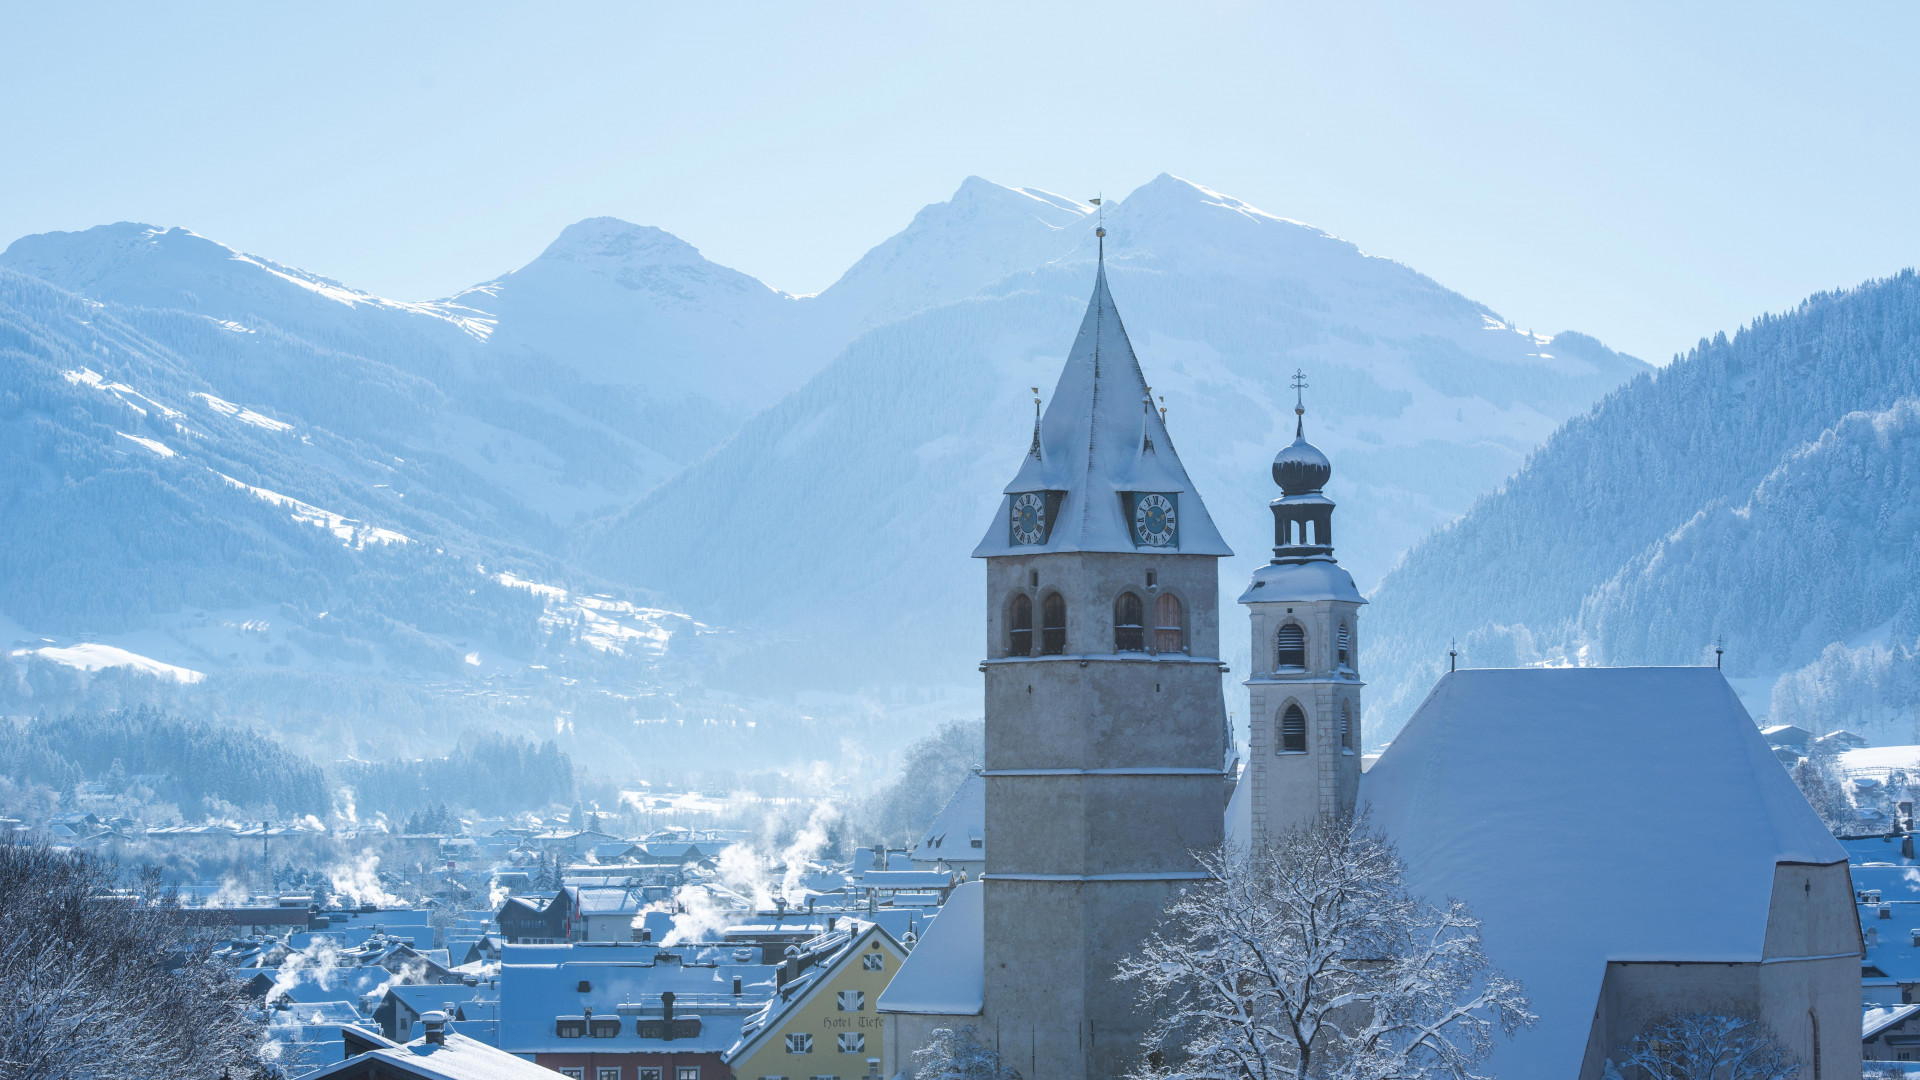 The centre of Kitzbühel covered in snow